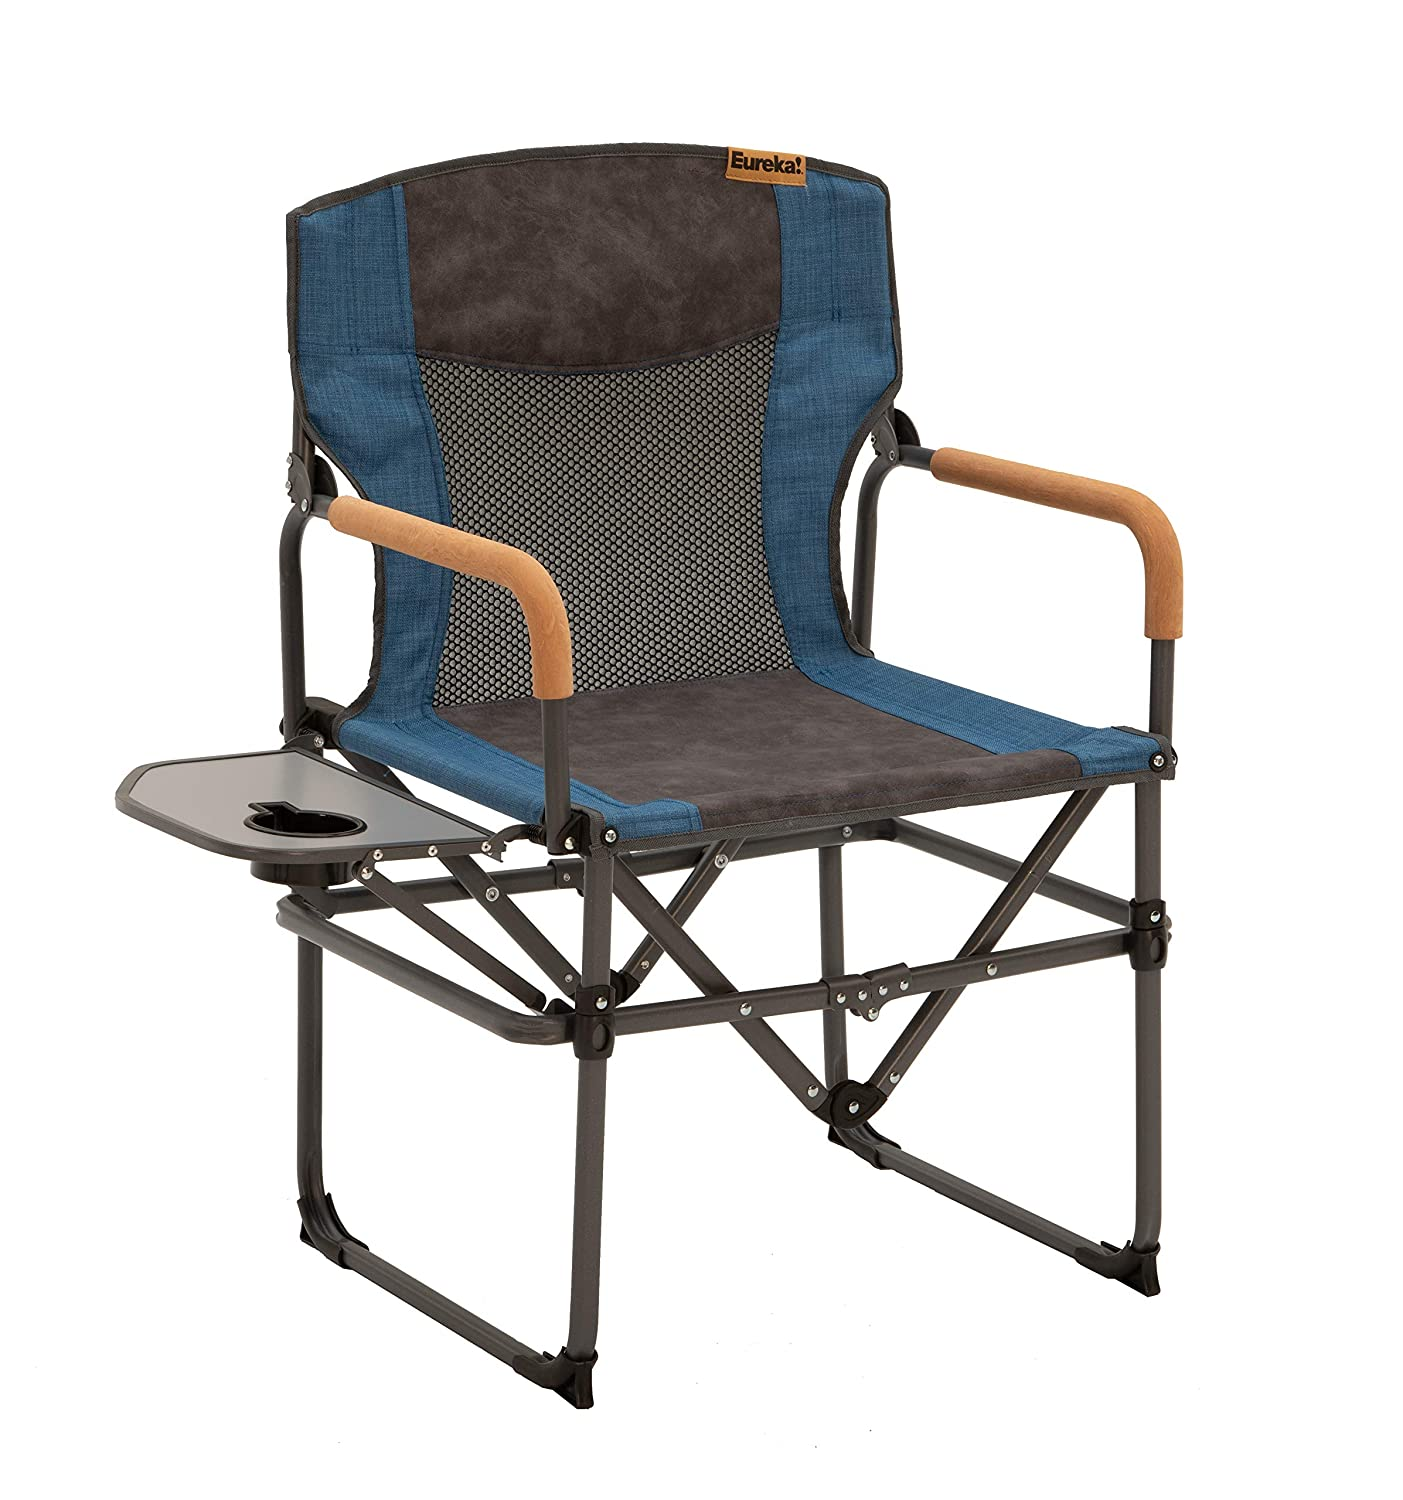 Eureka Director s Camping Chair with Side Table, Blue, One Size